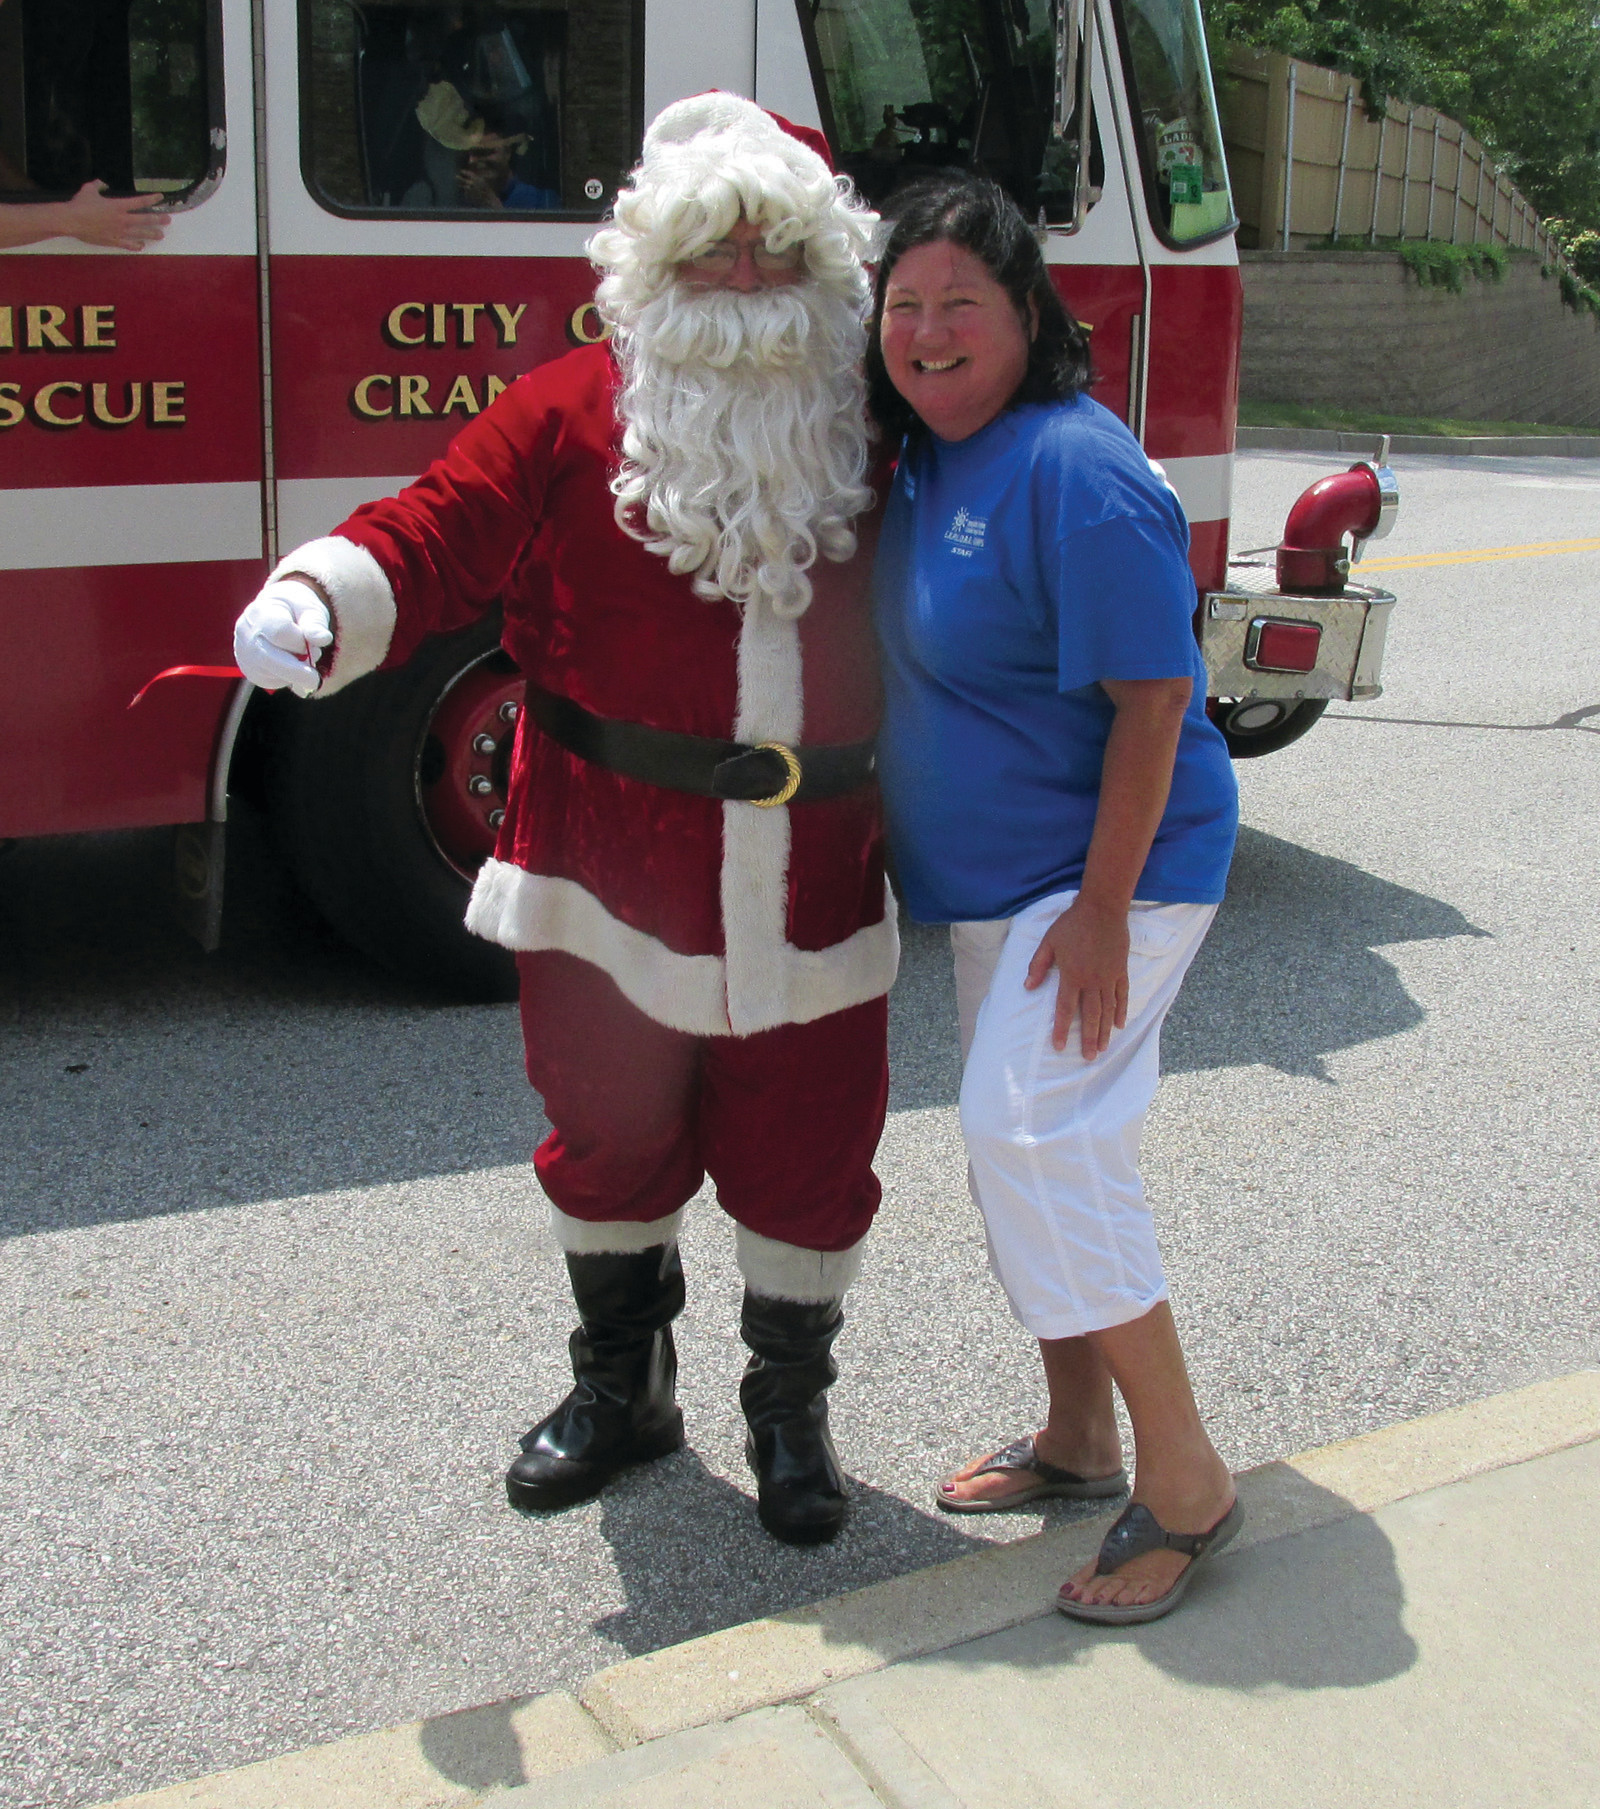 GRAND GREETING: Immaculate Conception teacher Carol McPhillips enjoys a rare moment in the middle of the summer, as she greets Santa Claus himself during the Summer Explore program's Christmas in July in Cranston.